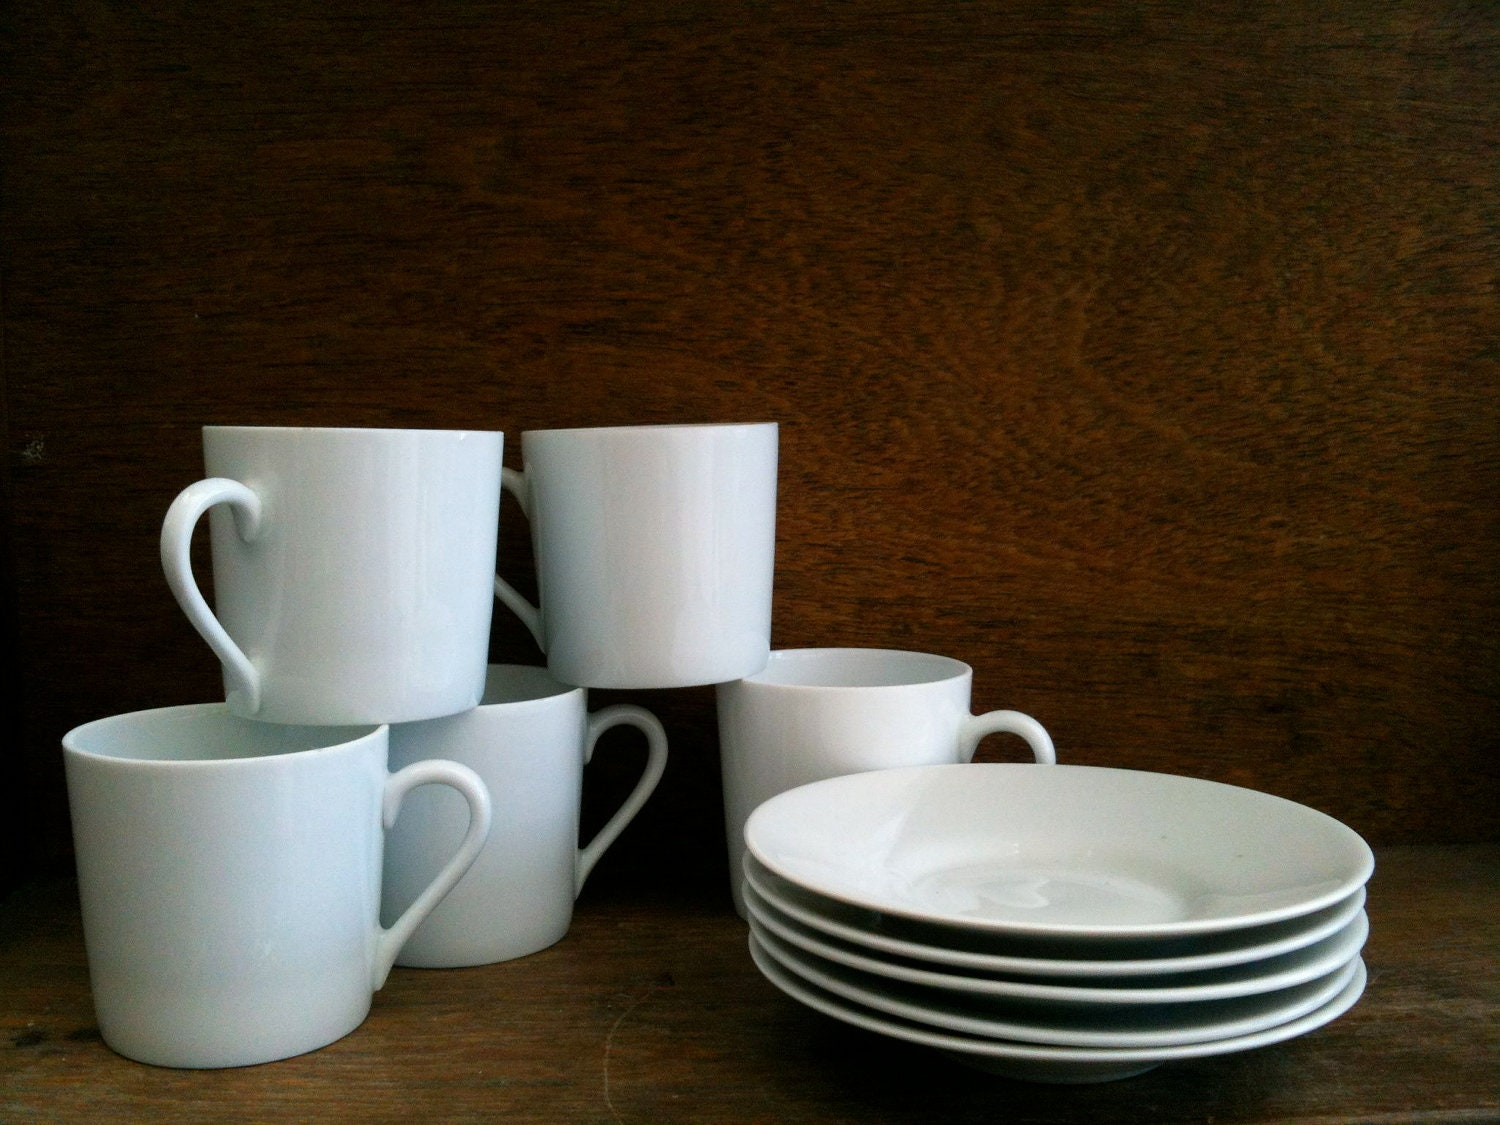 Vintage French Small Limoges White Coffee Cups, Set of 5 - EnglishShop